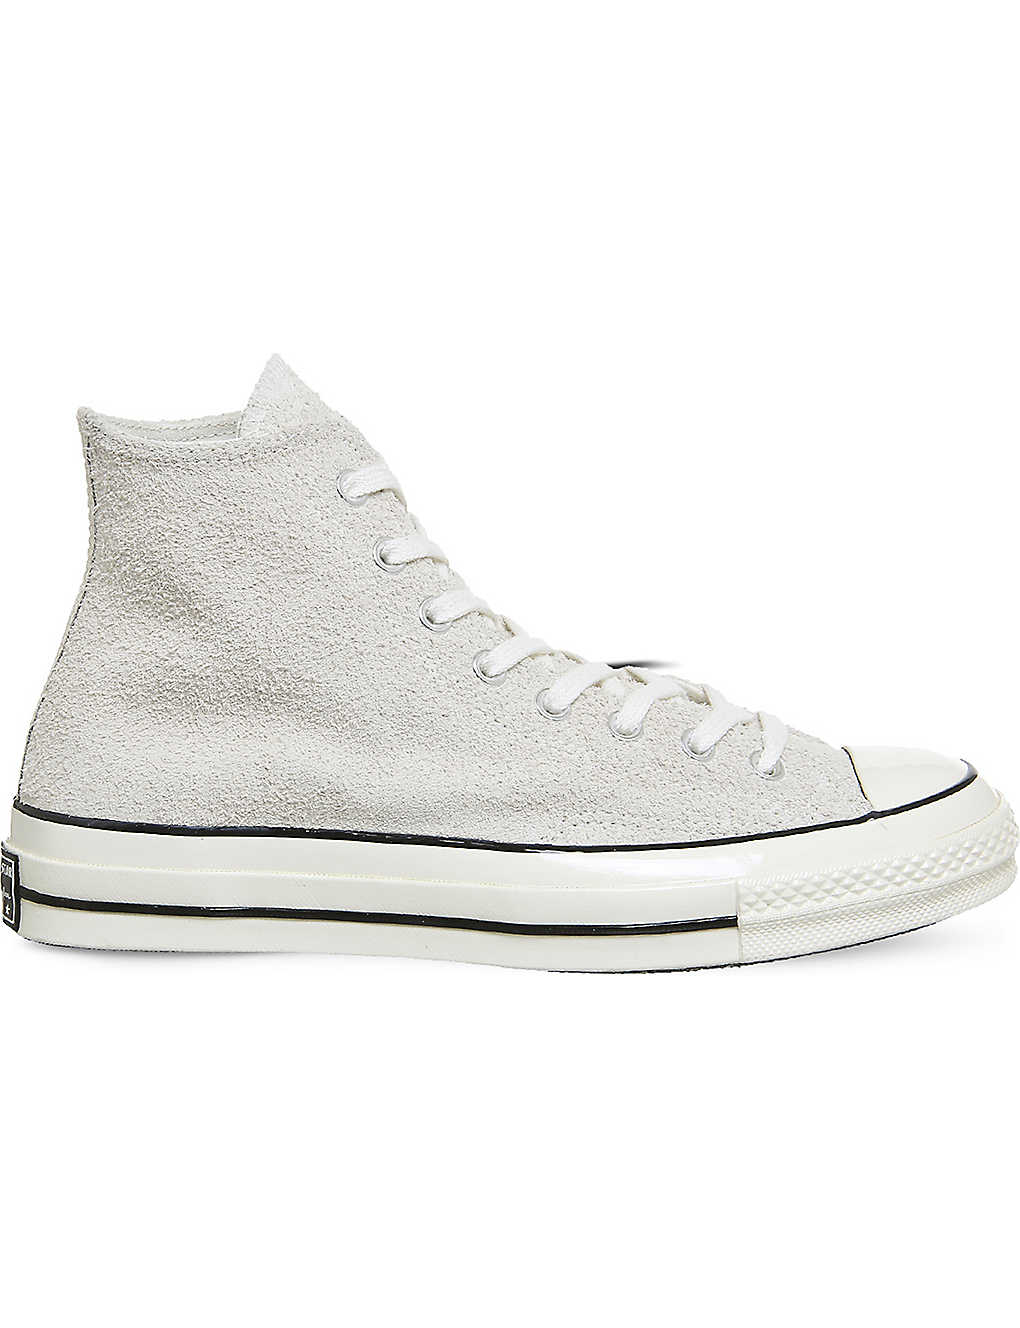 bdee9388acbe CONVERSE - Chuck Taylor All Star 70s Hi suede trainers